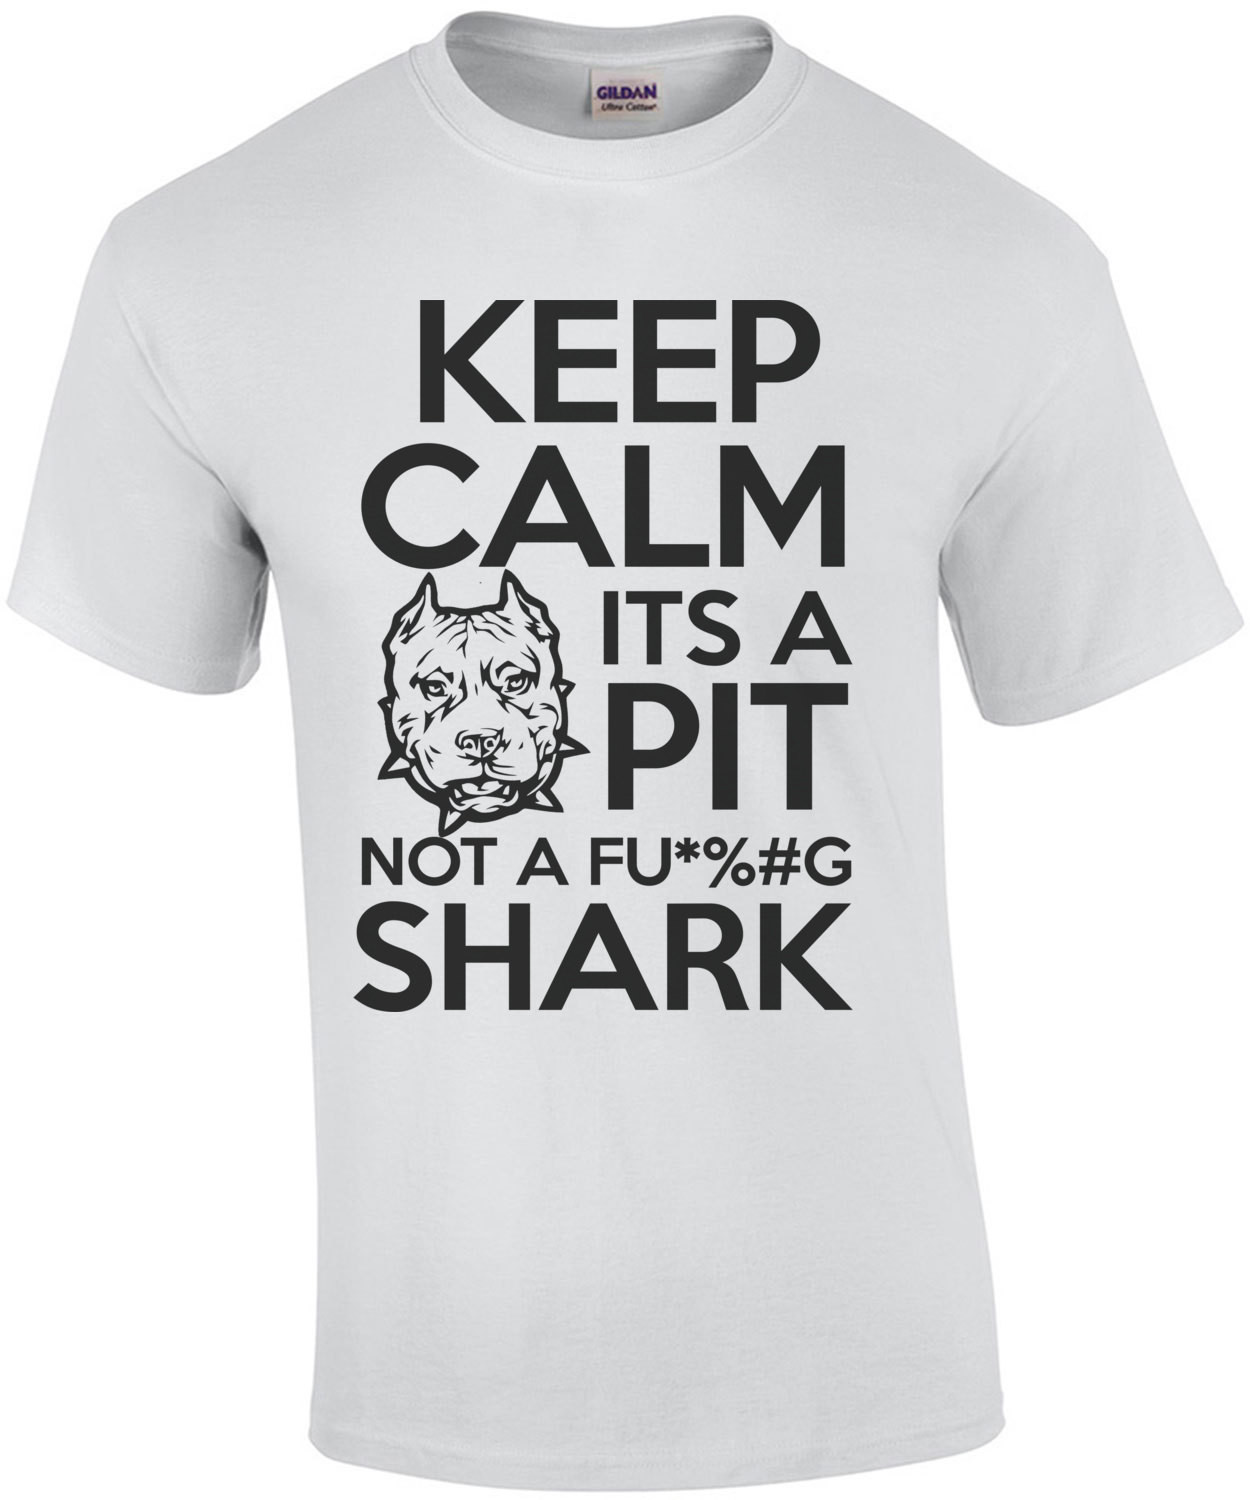 Keep Calm It's A Pit Not A Fucking Shark T-Shirt